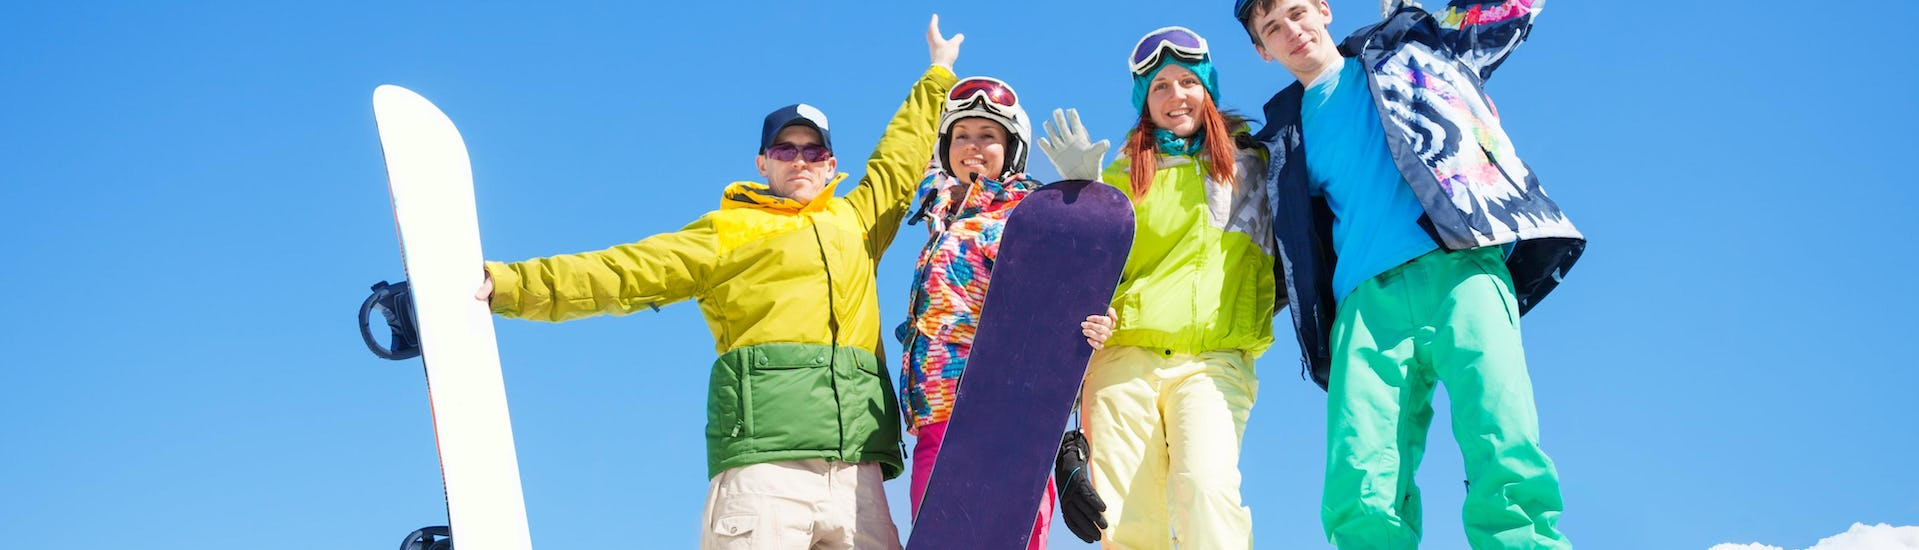 """Snowboard Lessons for Adults """"All-In-One"""" - All Levels"""